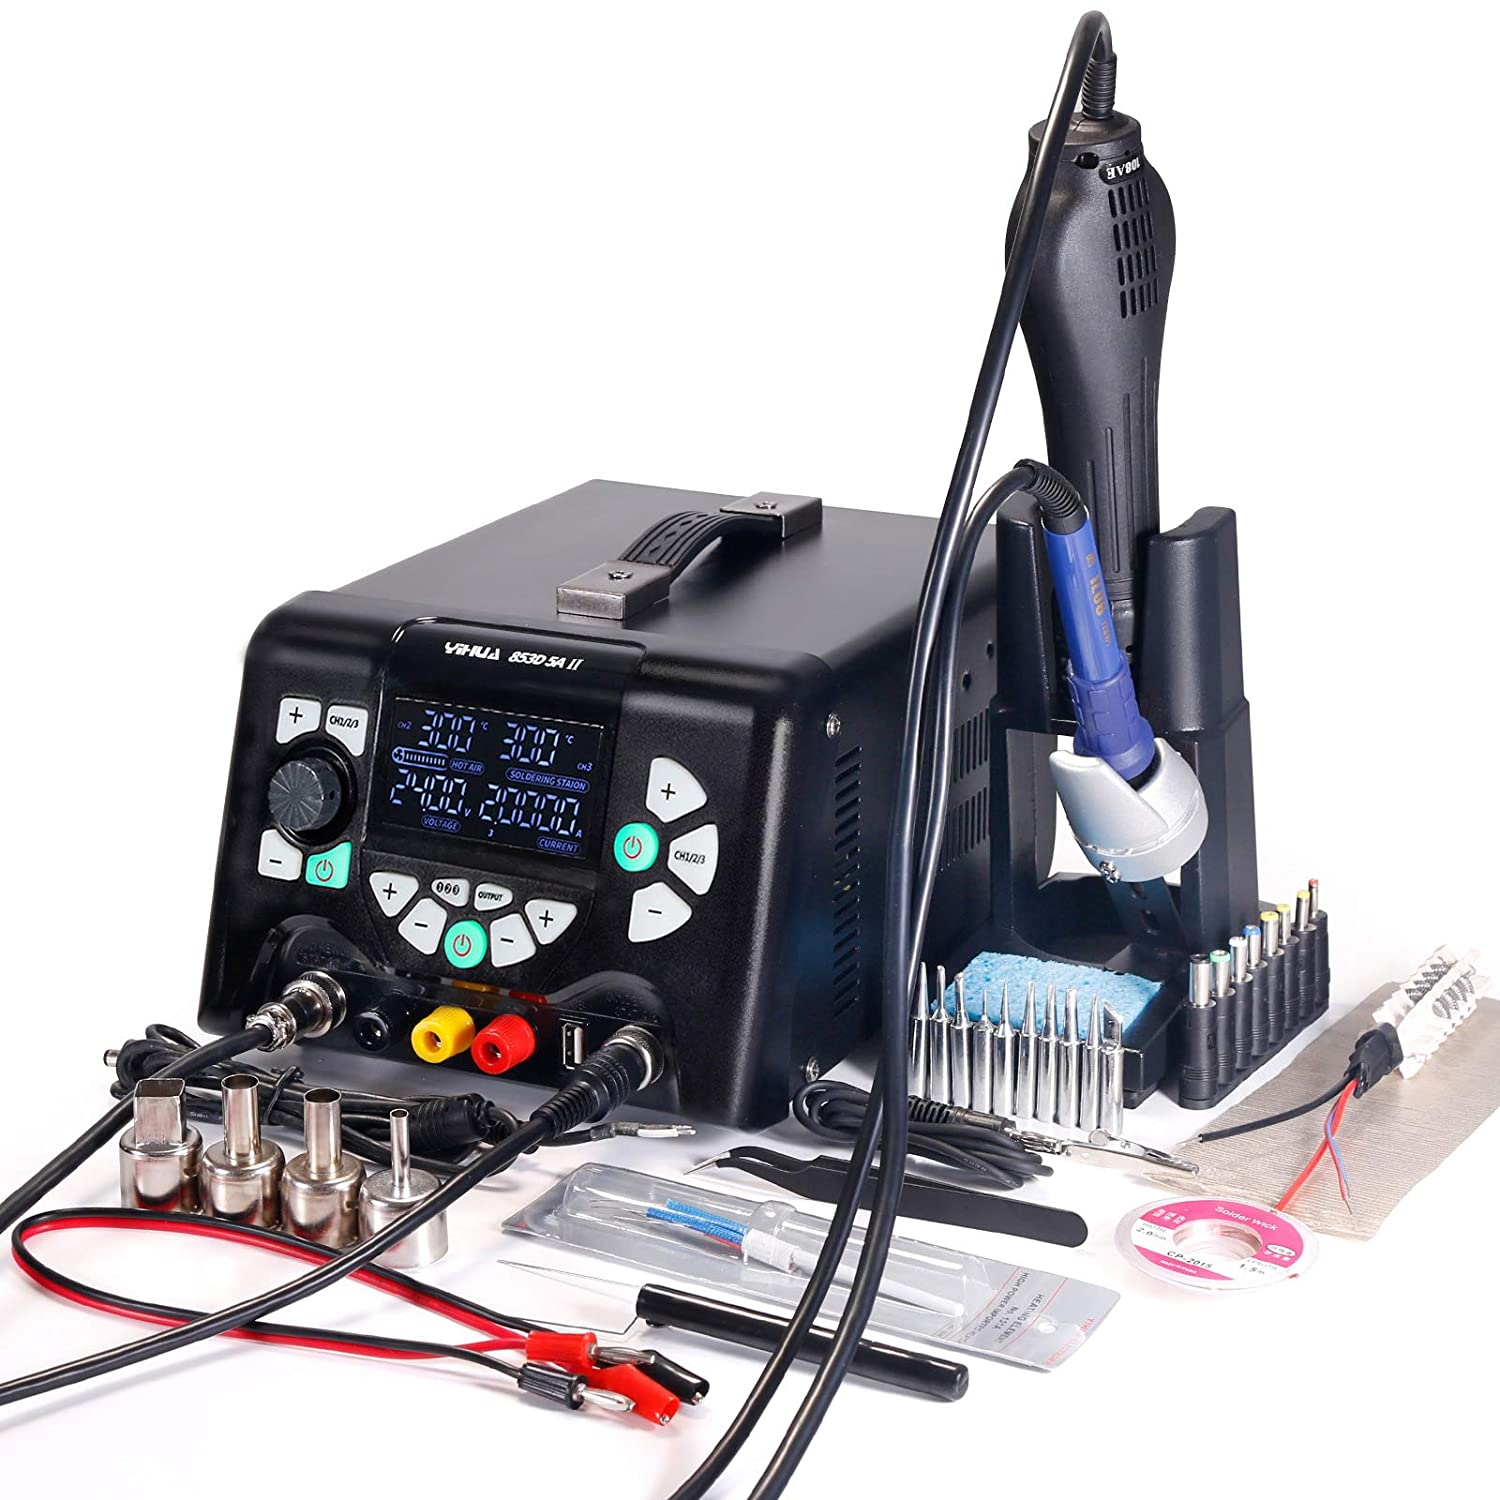 YIHUA 853D 5A-II 4 in 1 Hot Air Rework Soldering Iron Station and DC Power Supply 30V 5A -°F /°C Multiple Functions